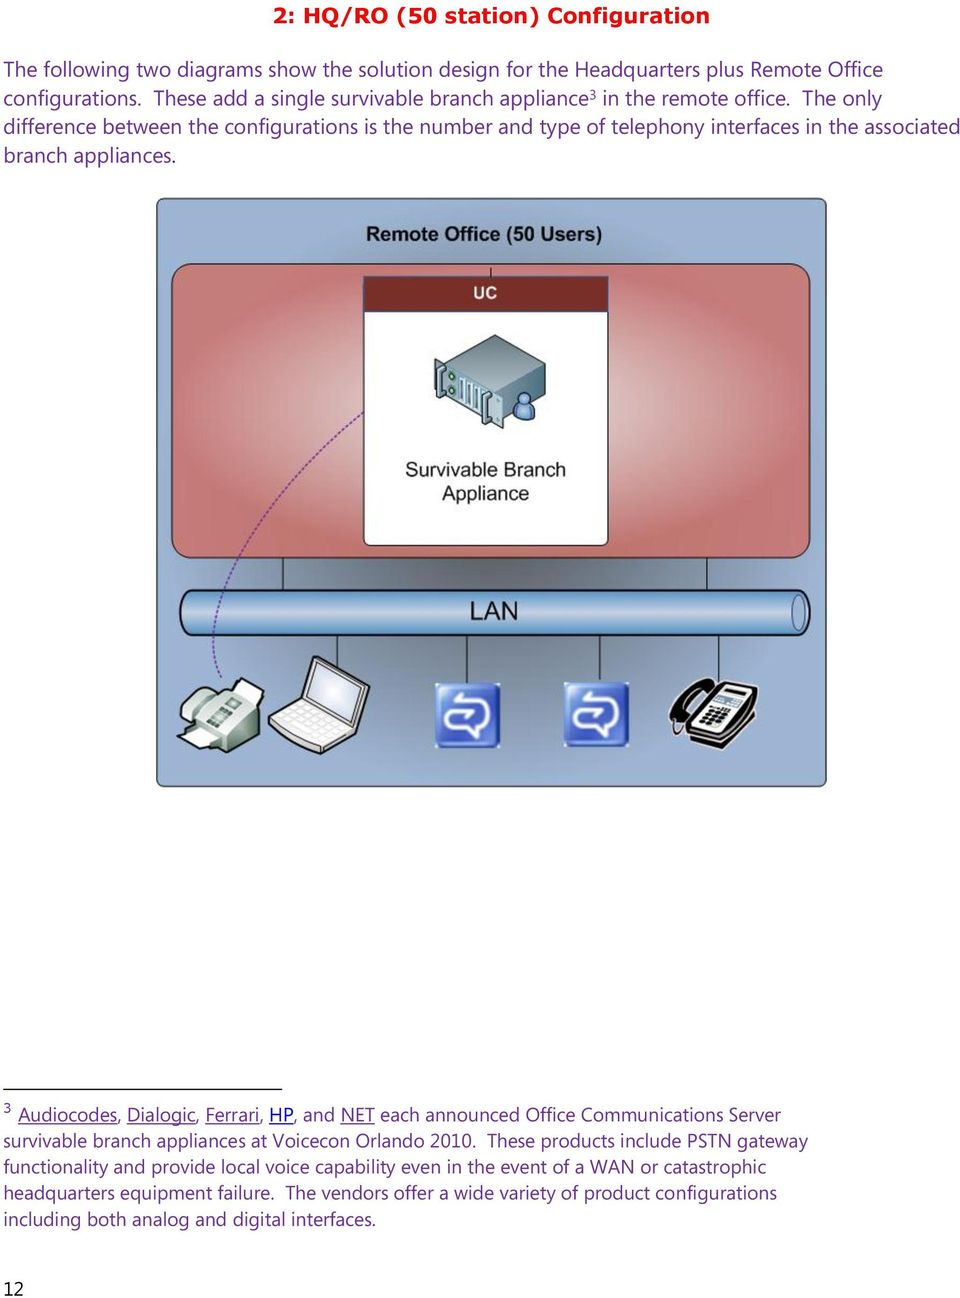 Solution Proposal Request For An Ip Telephony System Ata 110 Wiring Diagram B Walkthrough The Only Difference Between Configurations Is Number And Type Of Interfaces In